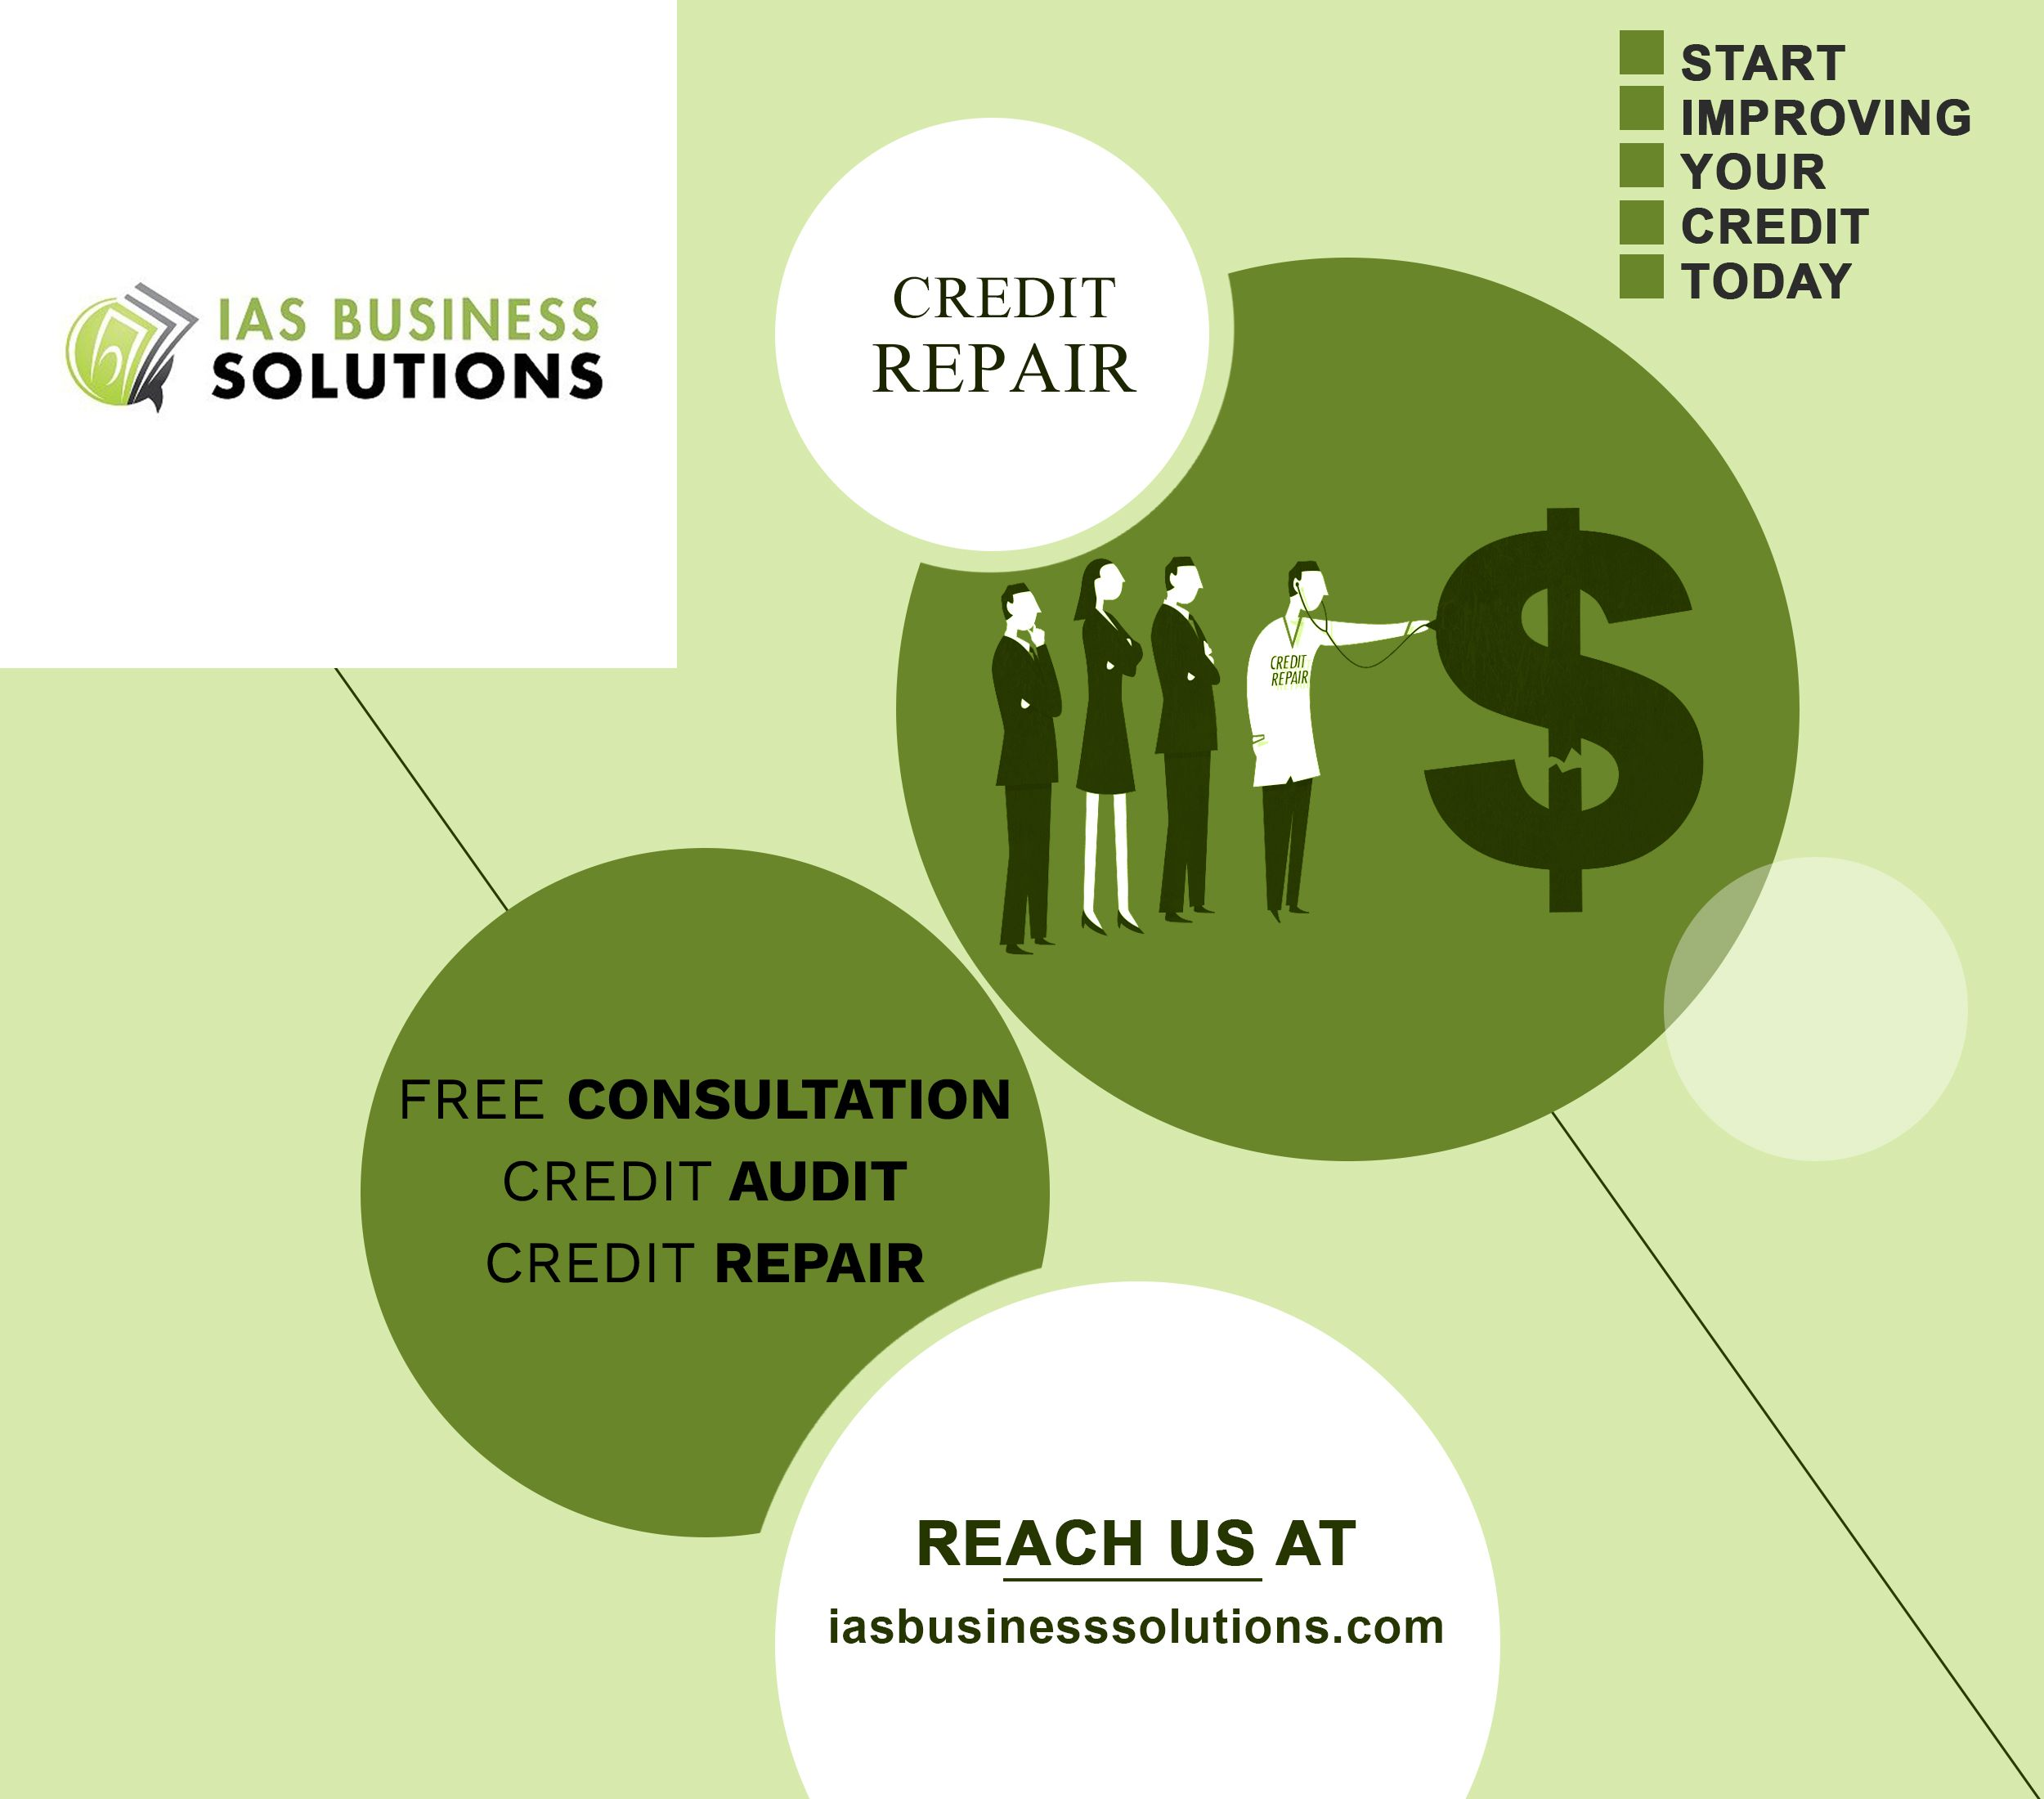 We're here to help you make your credit the best it can be